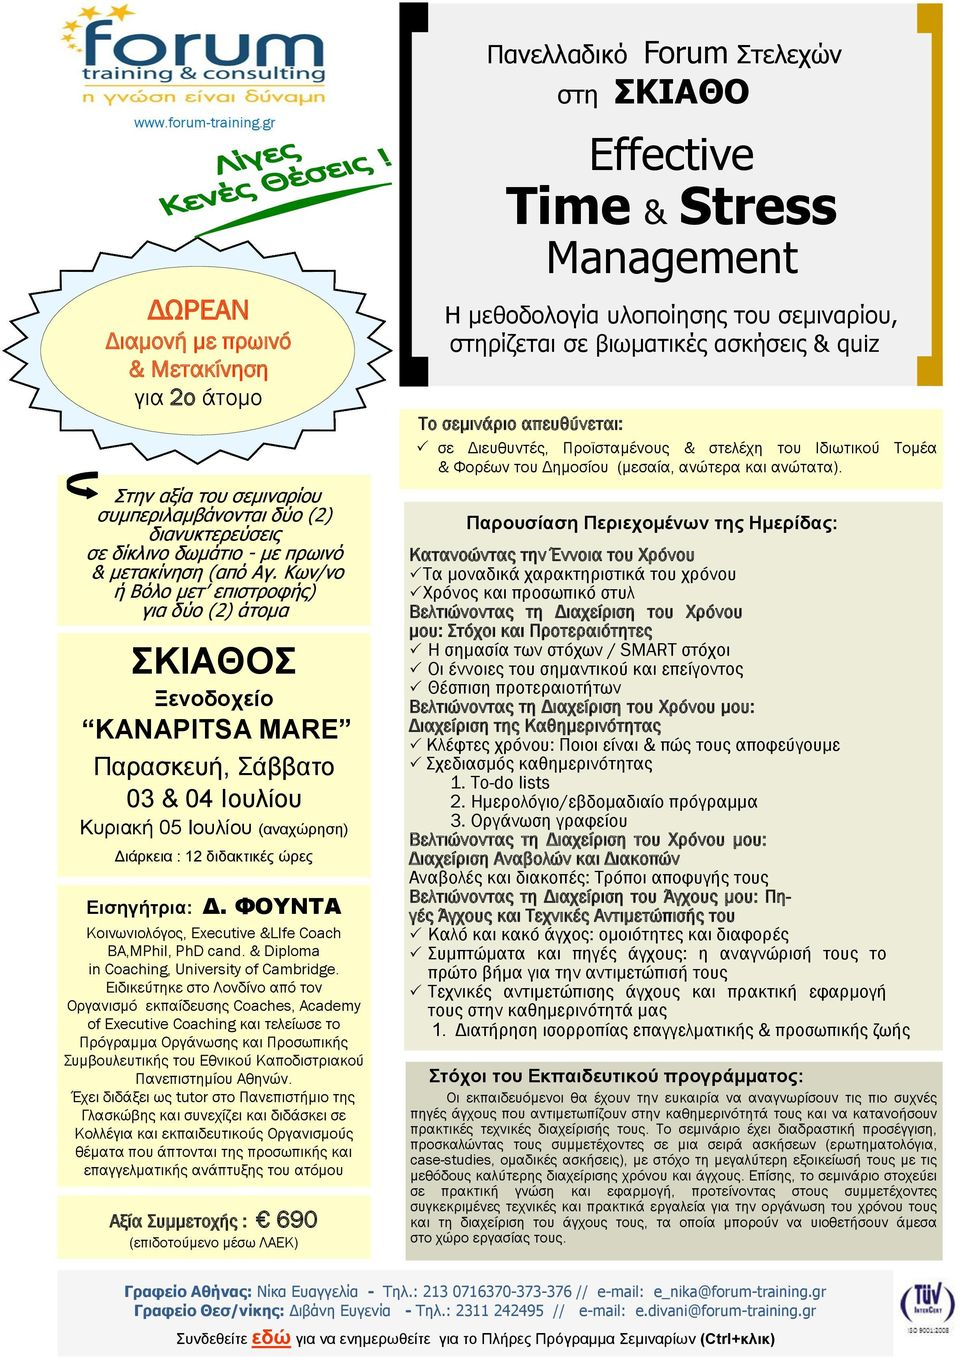 ΦΟΥΝΤΑ Κοινωνιολόγος, Εxecutive &LIfe Coach BA,MPhil, PhD cand. & Diploma in Coaching, University of Cambridge.